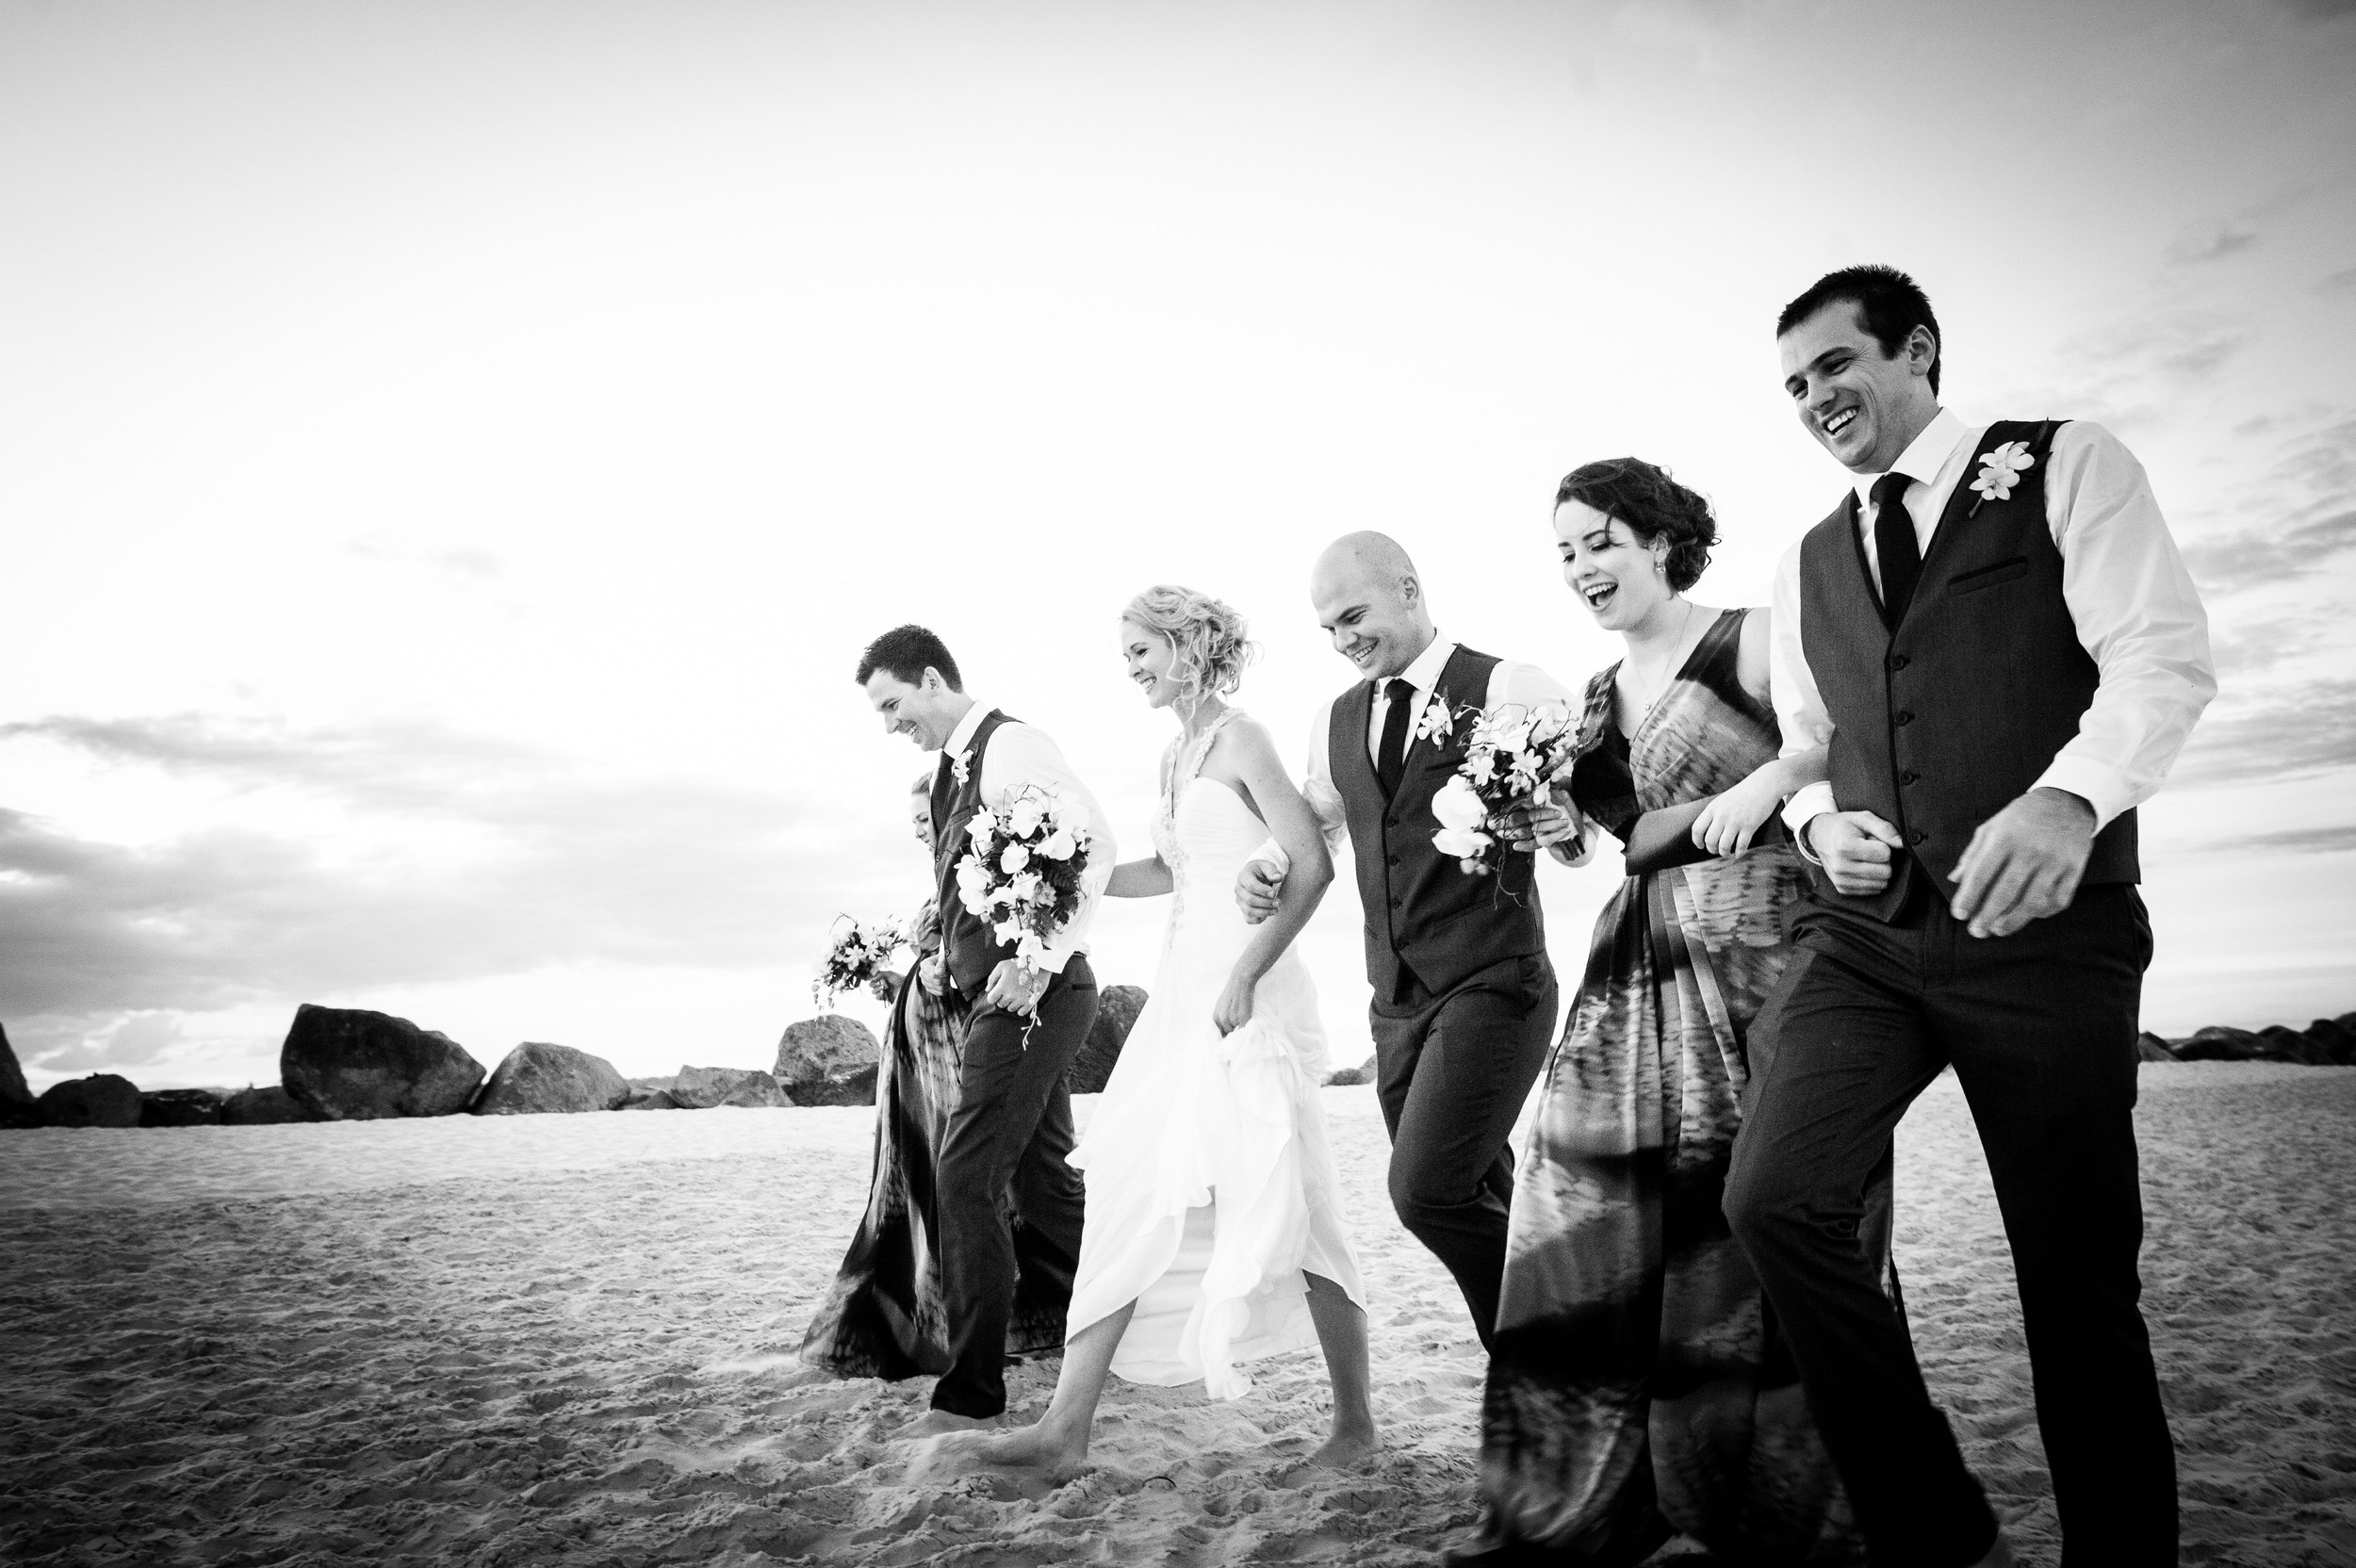 Seeweddings-62.jpg